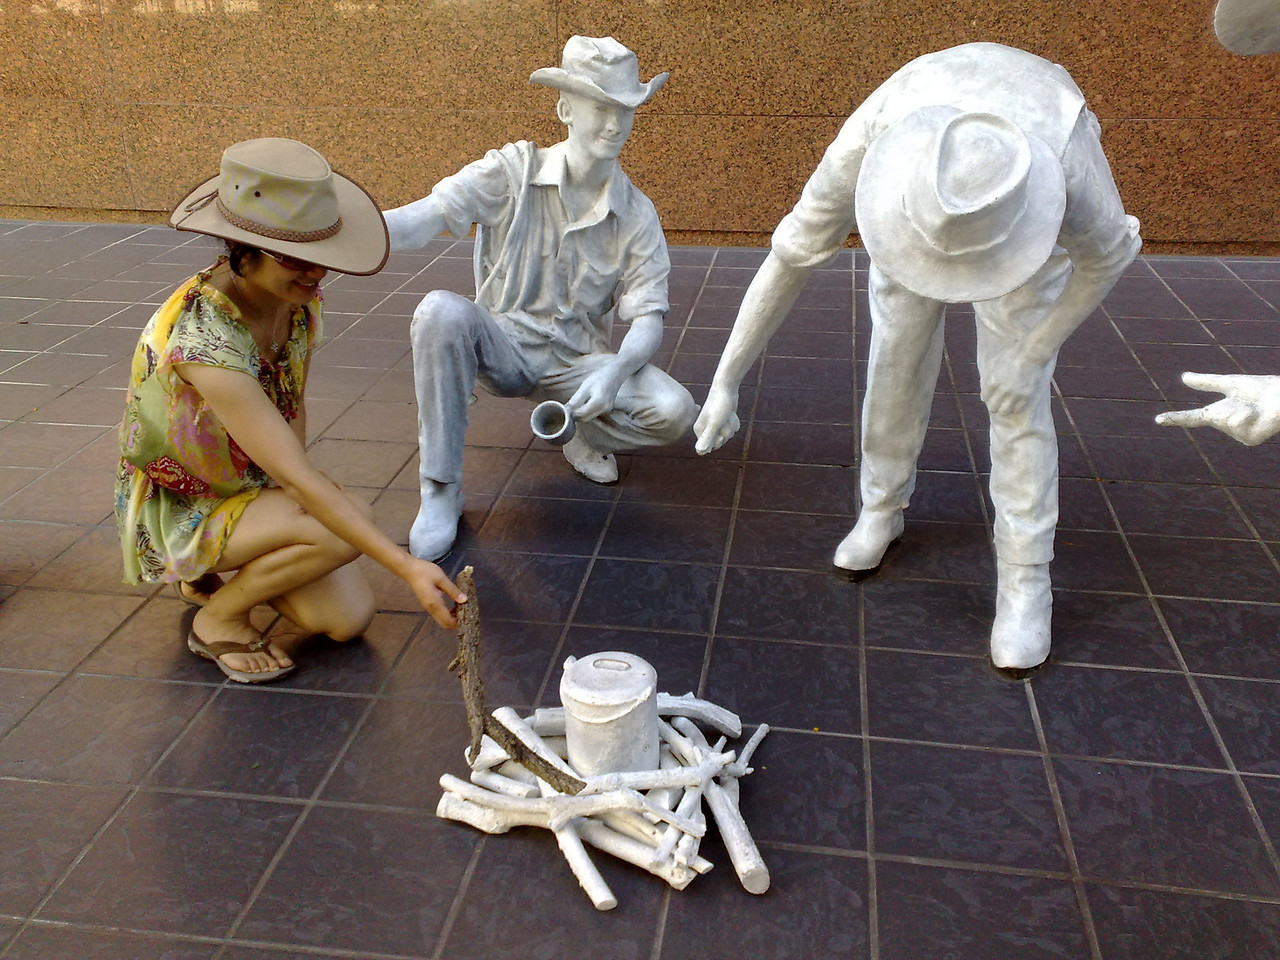 20100214_1718_1204 Sculptures of drovers from an exhibition in Brisbane. Near, I think, the Primary Industry office, not far from George & Sebel Hotel.